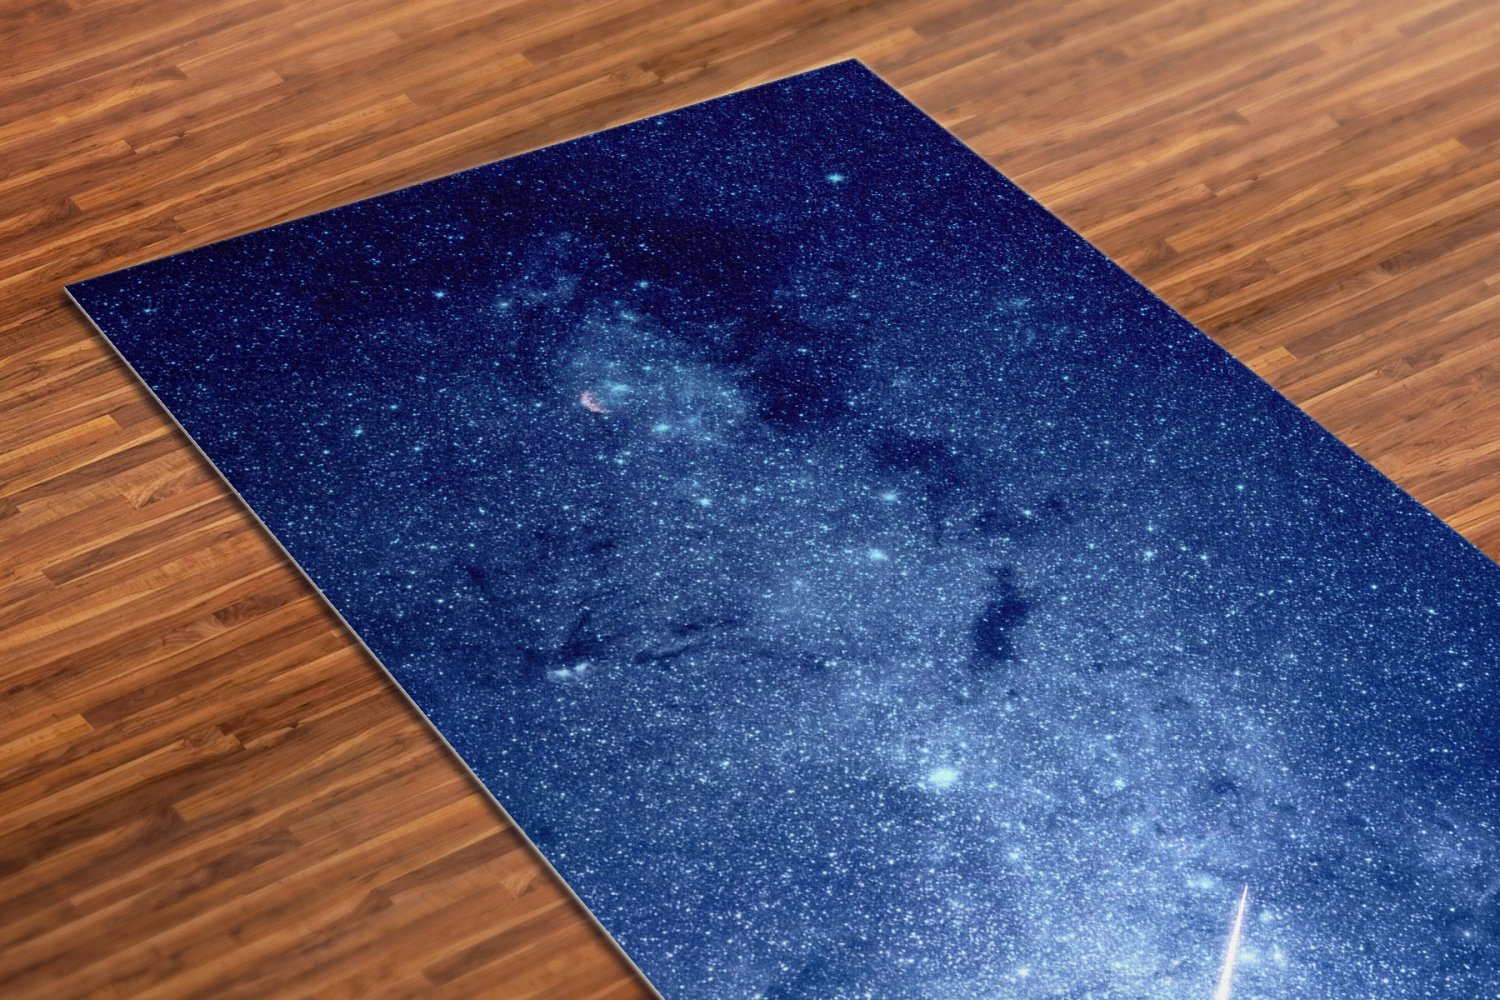 Star Printed Yoga Mat Thick 5 mm 24 x 72 Pilates Blue Decor Rug Gift Fitness and Exercise Meditation